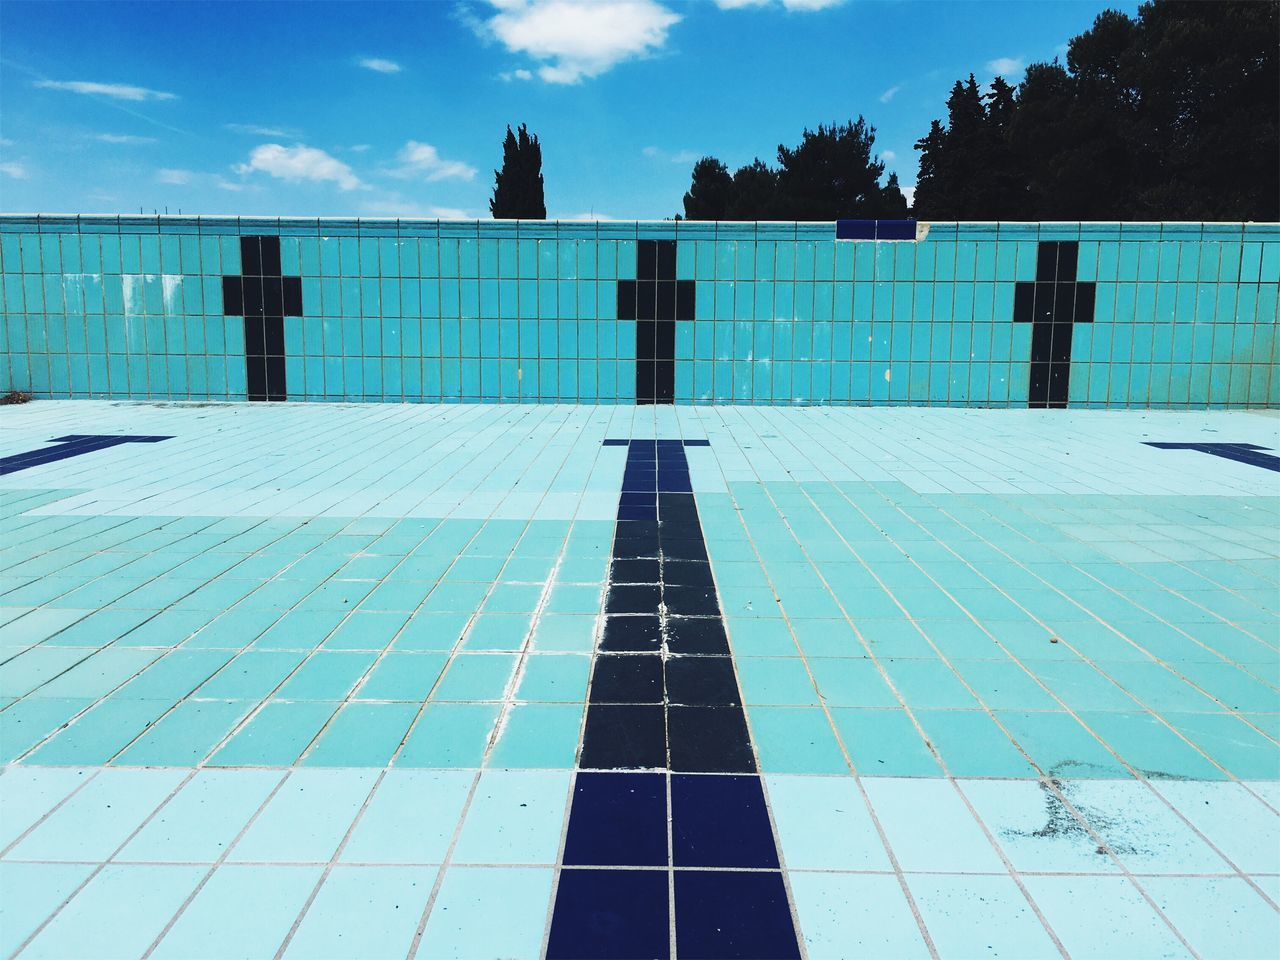 Off season swimming pool. Waiting foe the summer. Swimming Pool Outdoors Tile Architecture Day Sky Tree Built Structure No People Building Exterior Minimalism Abstract Colors Structure Eye4photography